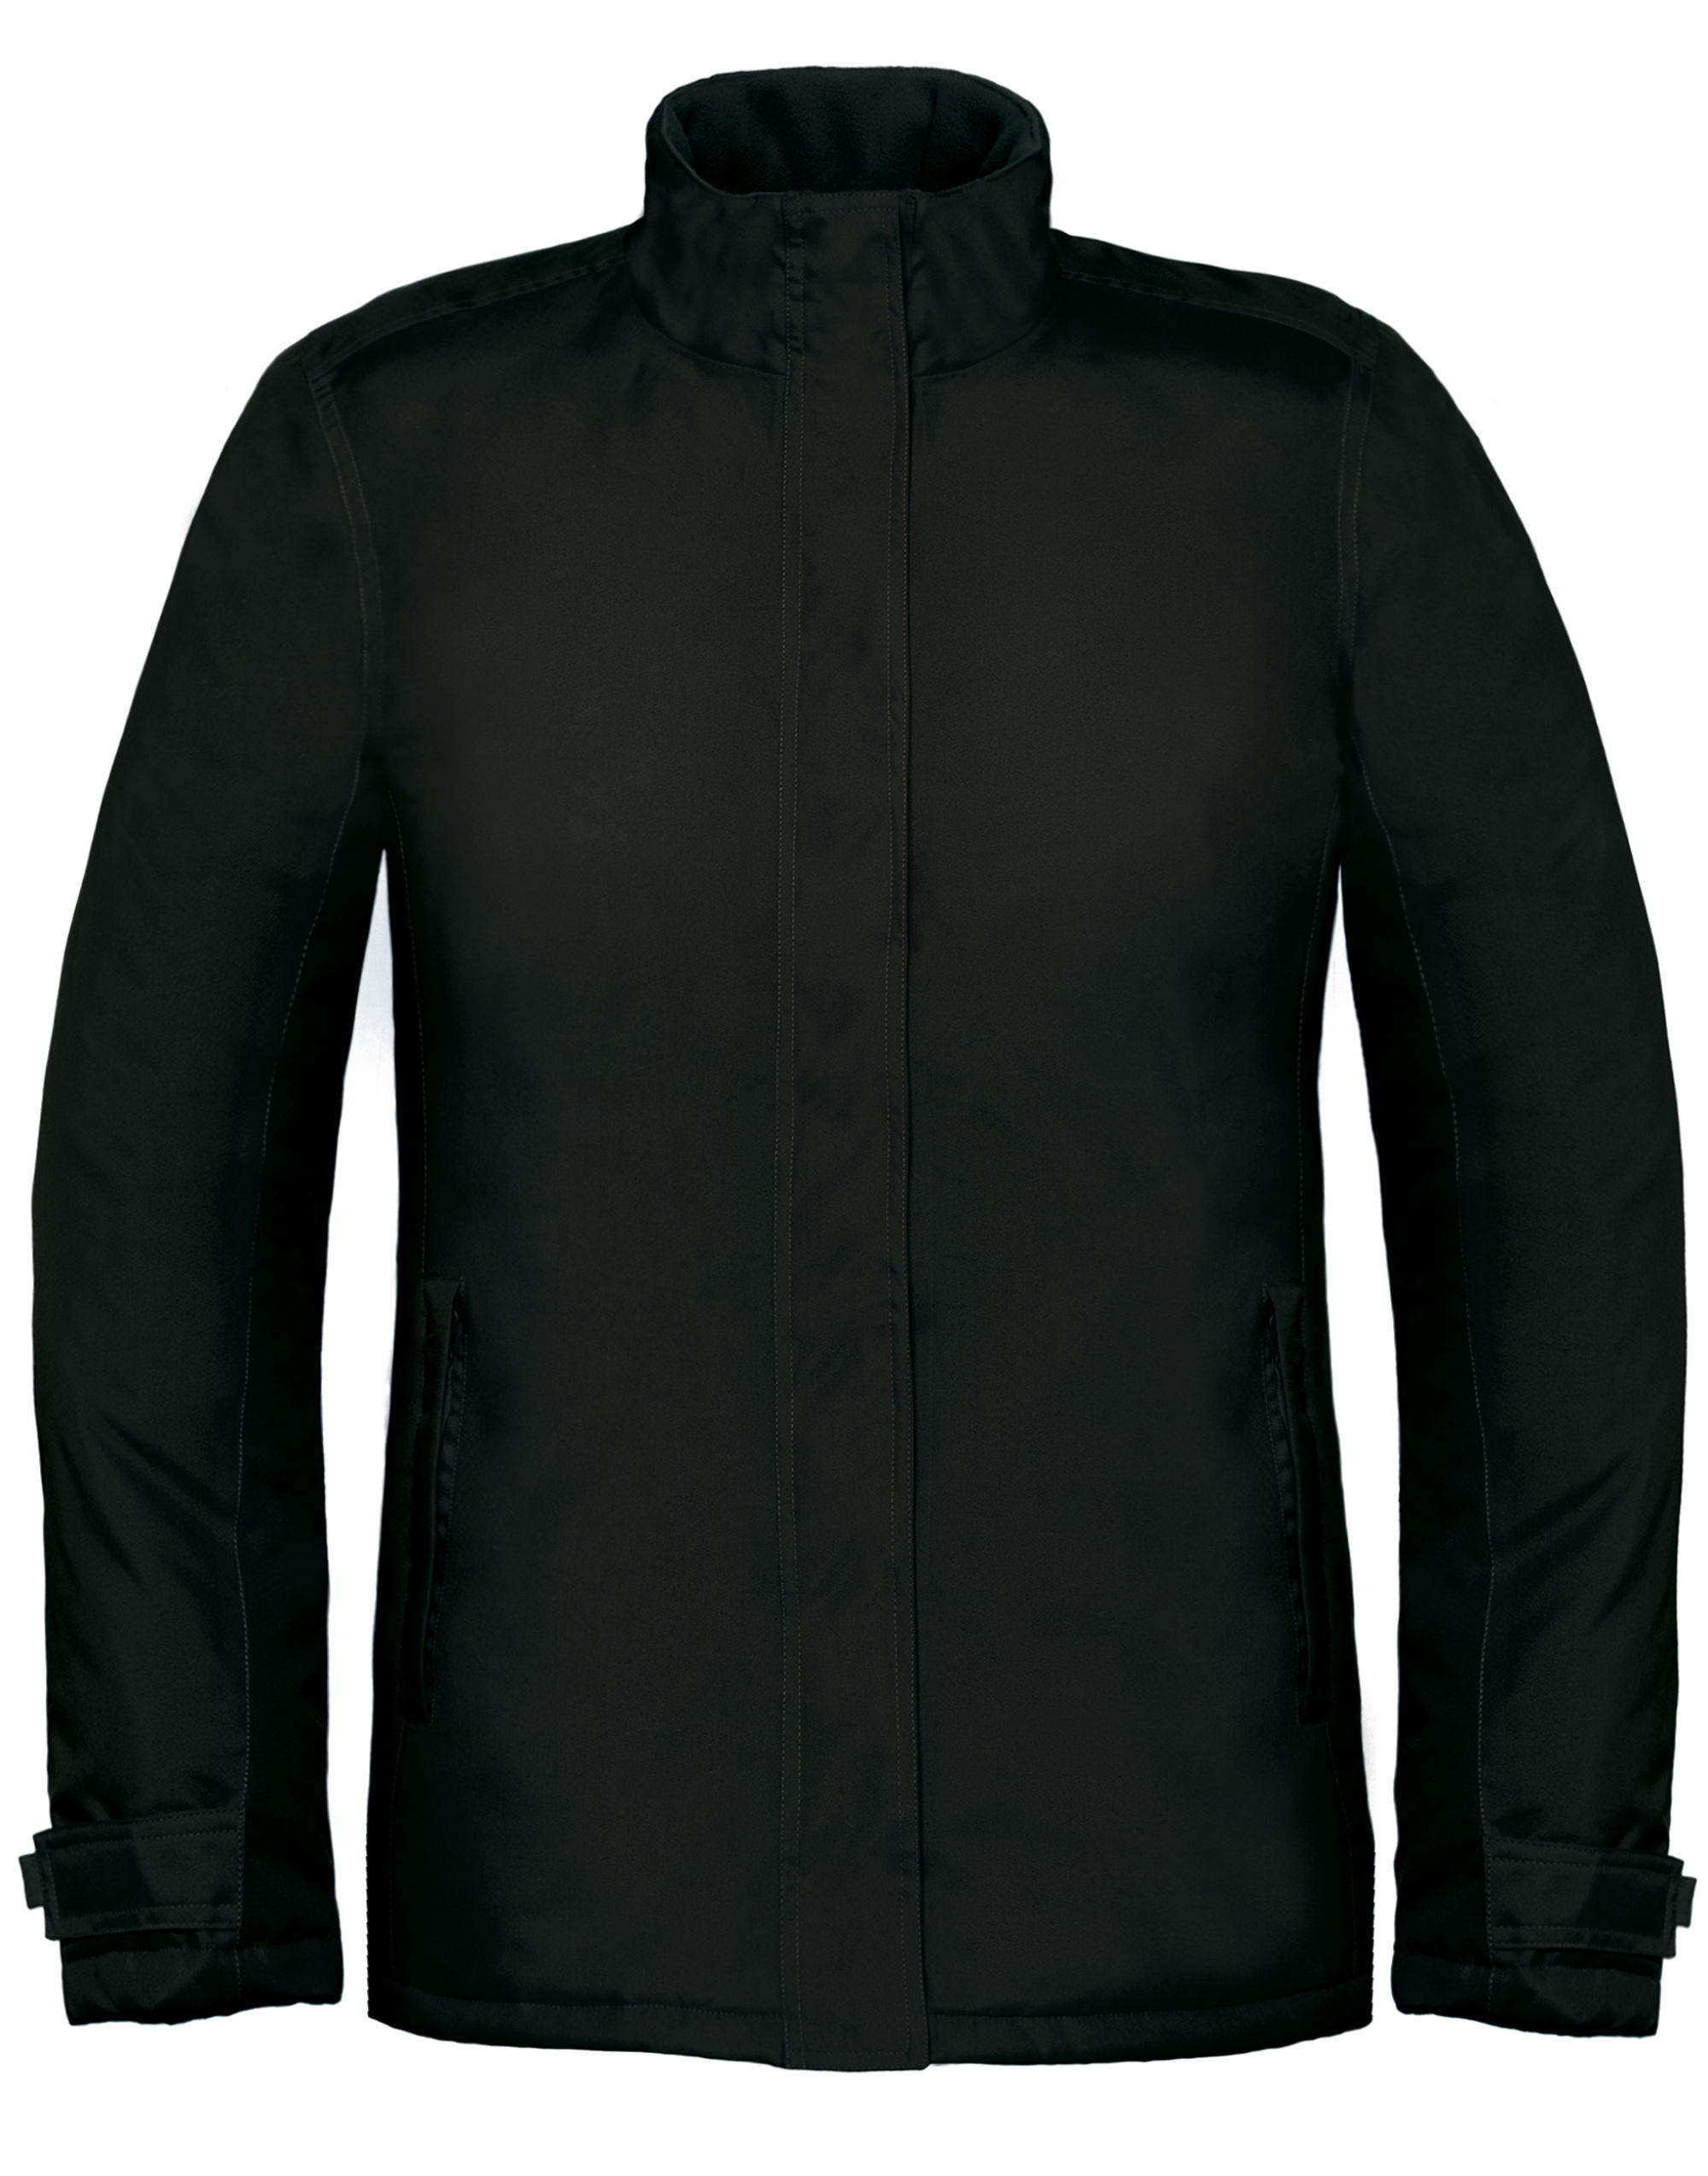 B&c Womens Real+ Jacket